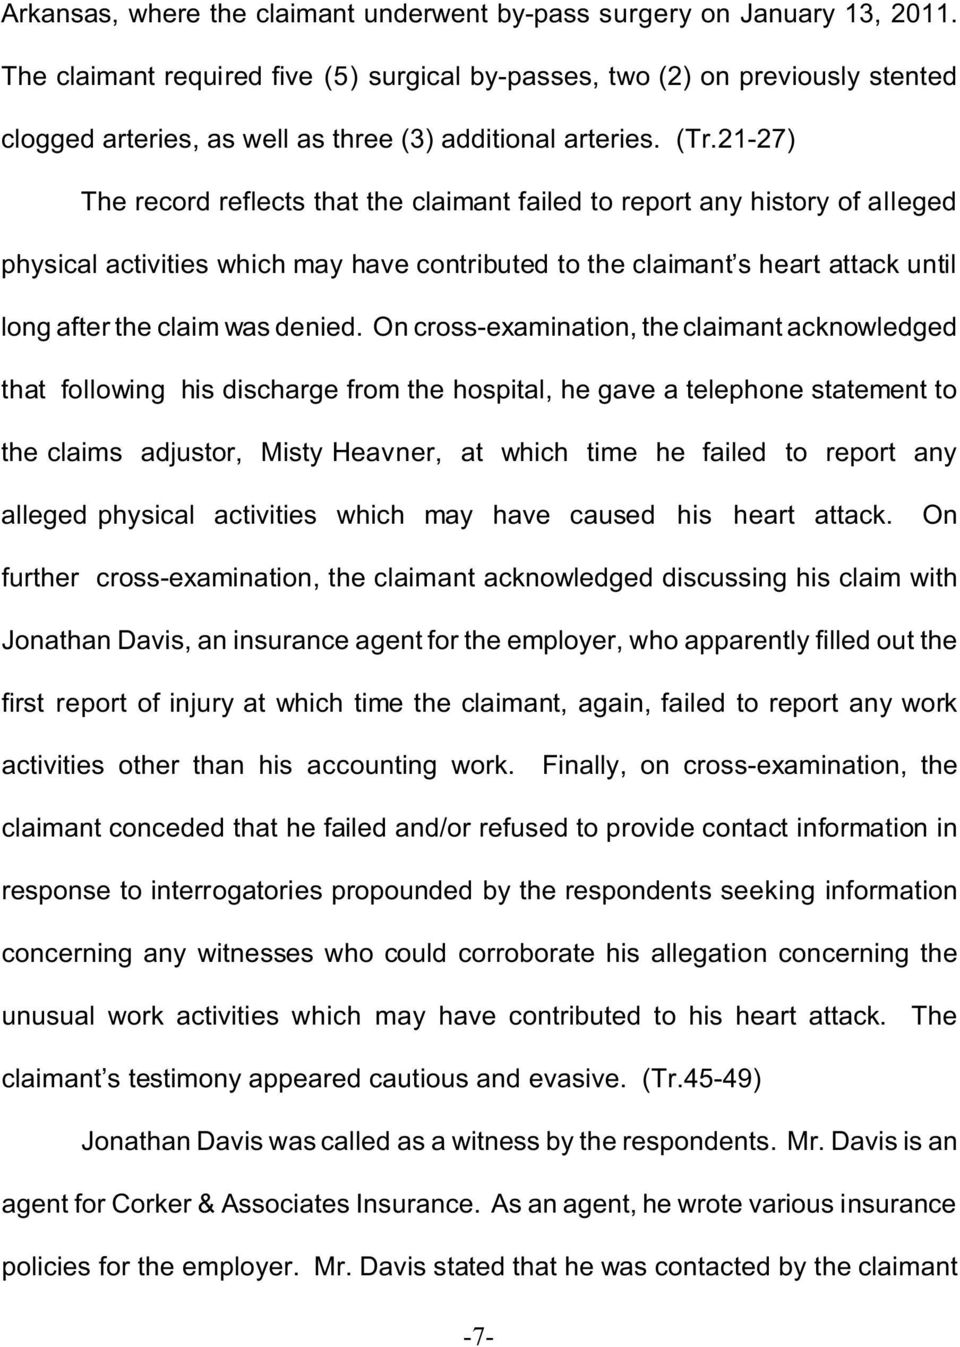 21-27) The record reflects that the claimant failed to report any history of alleged physical activities which may have contributed to the claimant s heart attack until long after the claim was